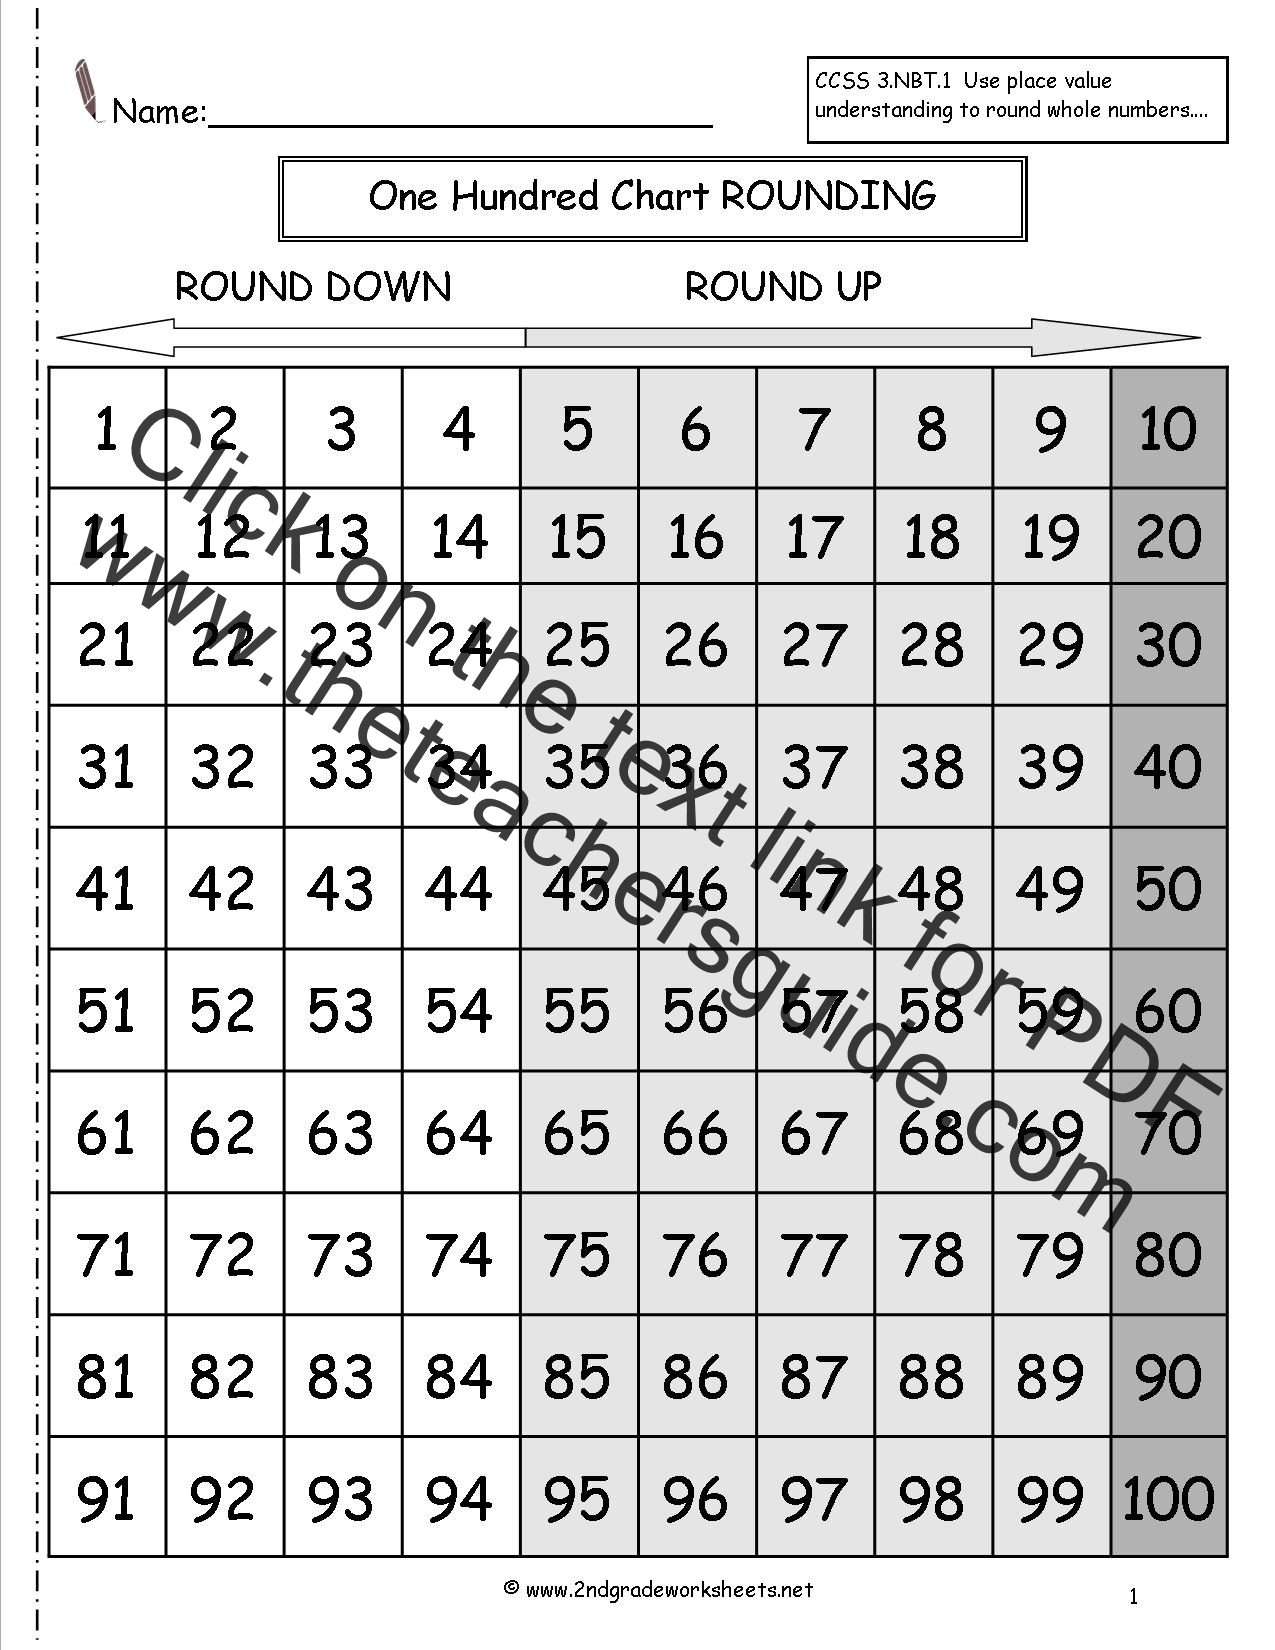 worksheet Rounding To Nearest Ten Worksheet rounding whole numbers worksheets one hundred chart worksheet